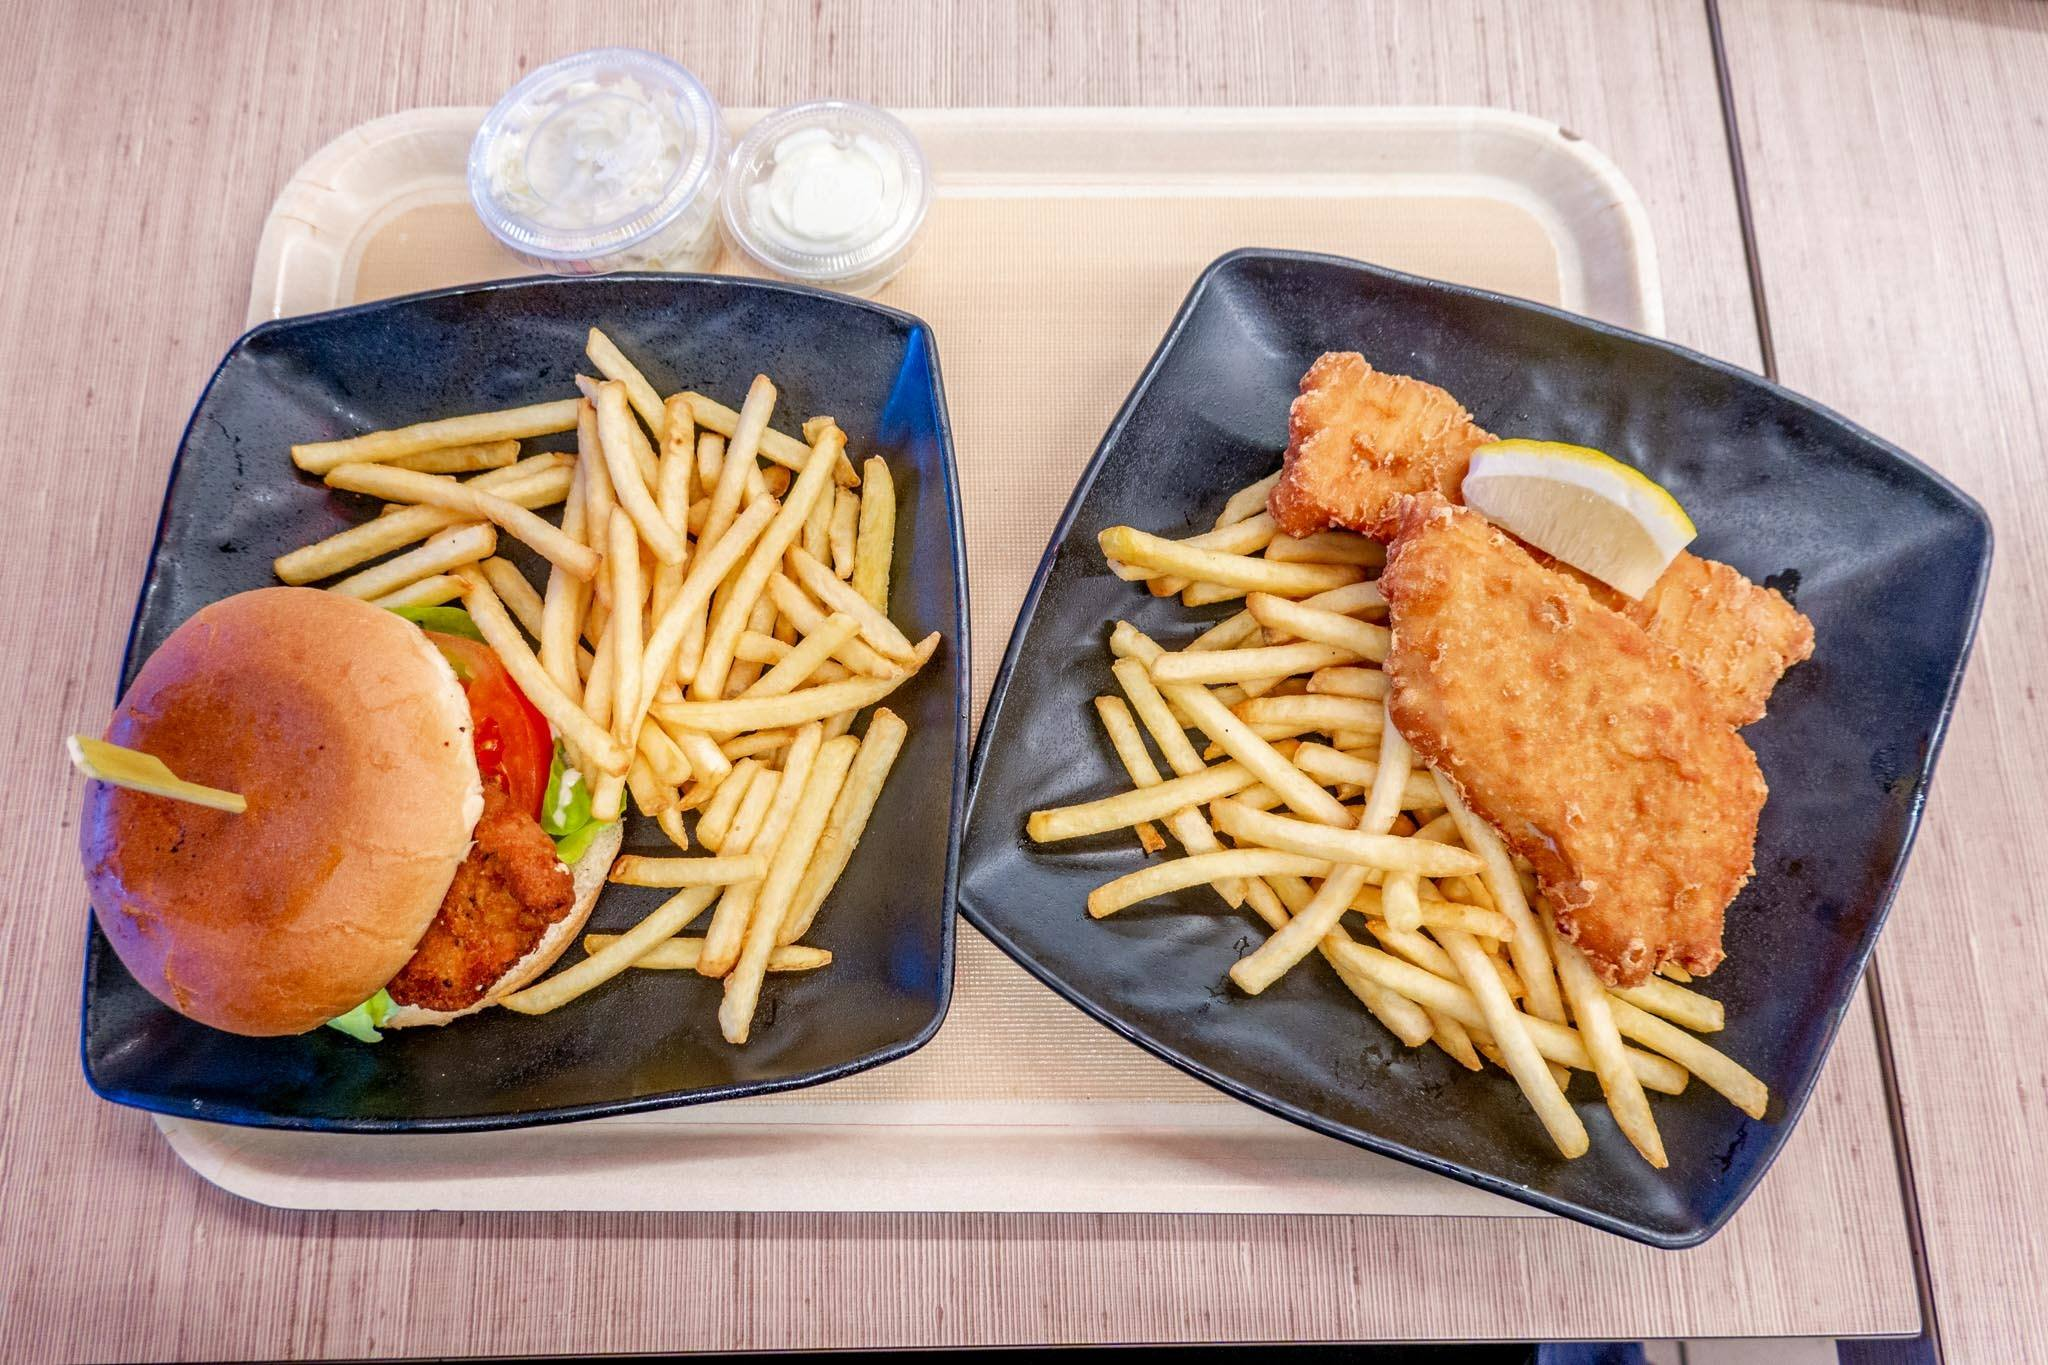 Plates of fish and chips and also a chicken sandwich